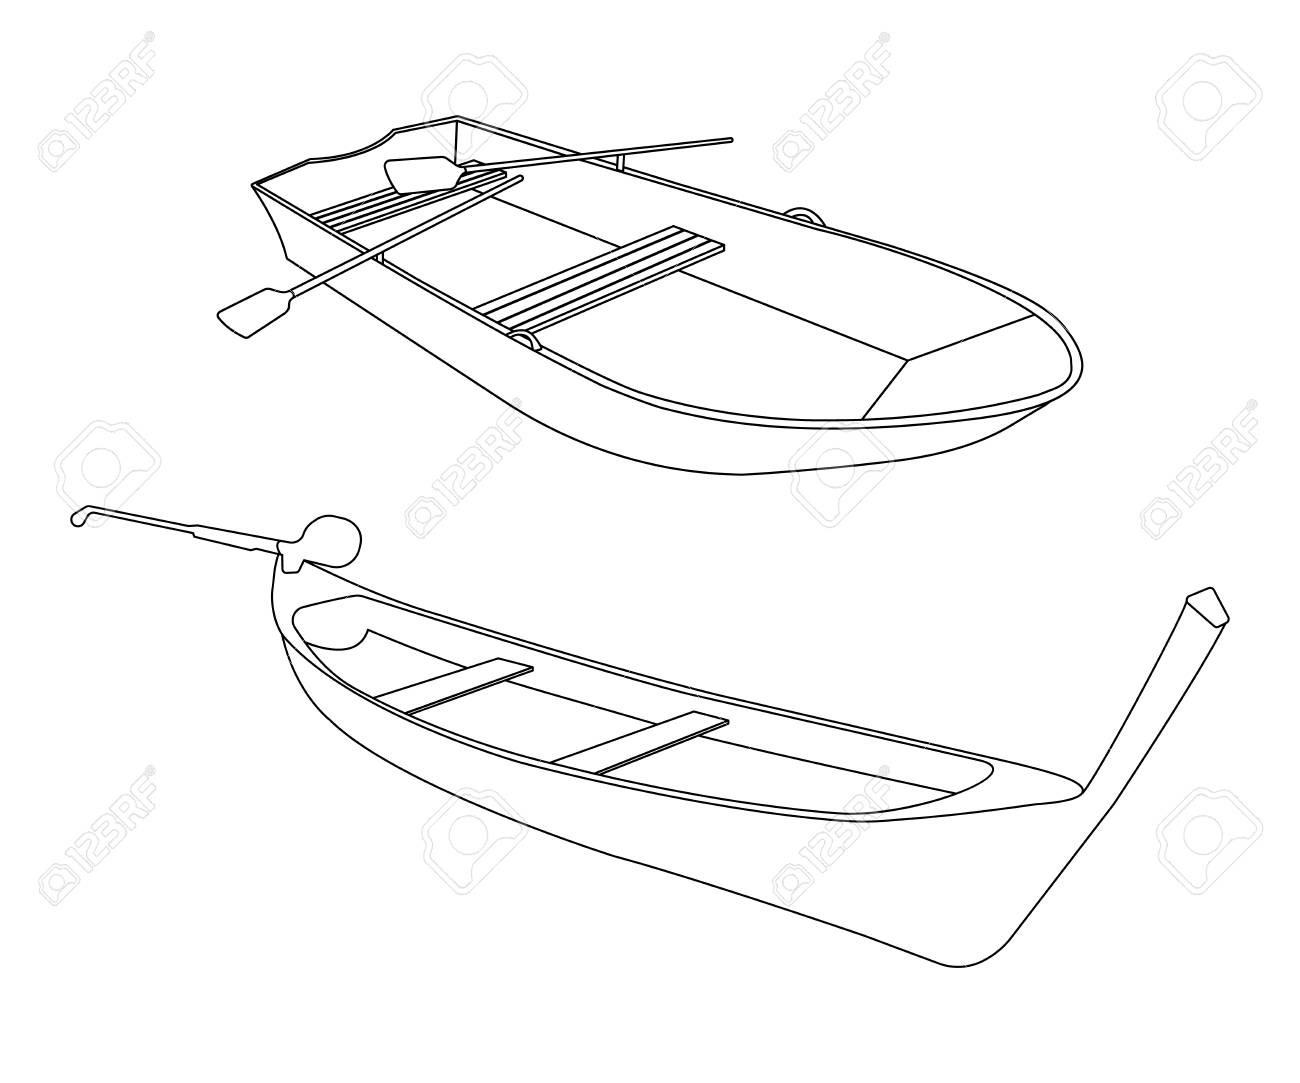 Pirogue Clipart | Free Images at Clker.com - vector clip art online,  royalty free & public domain